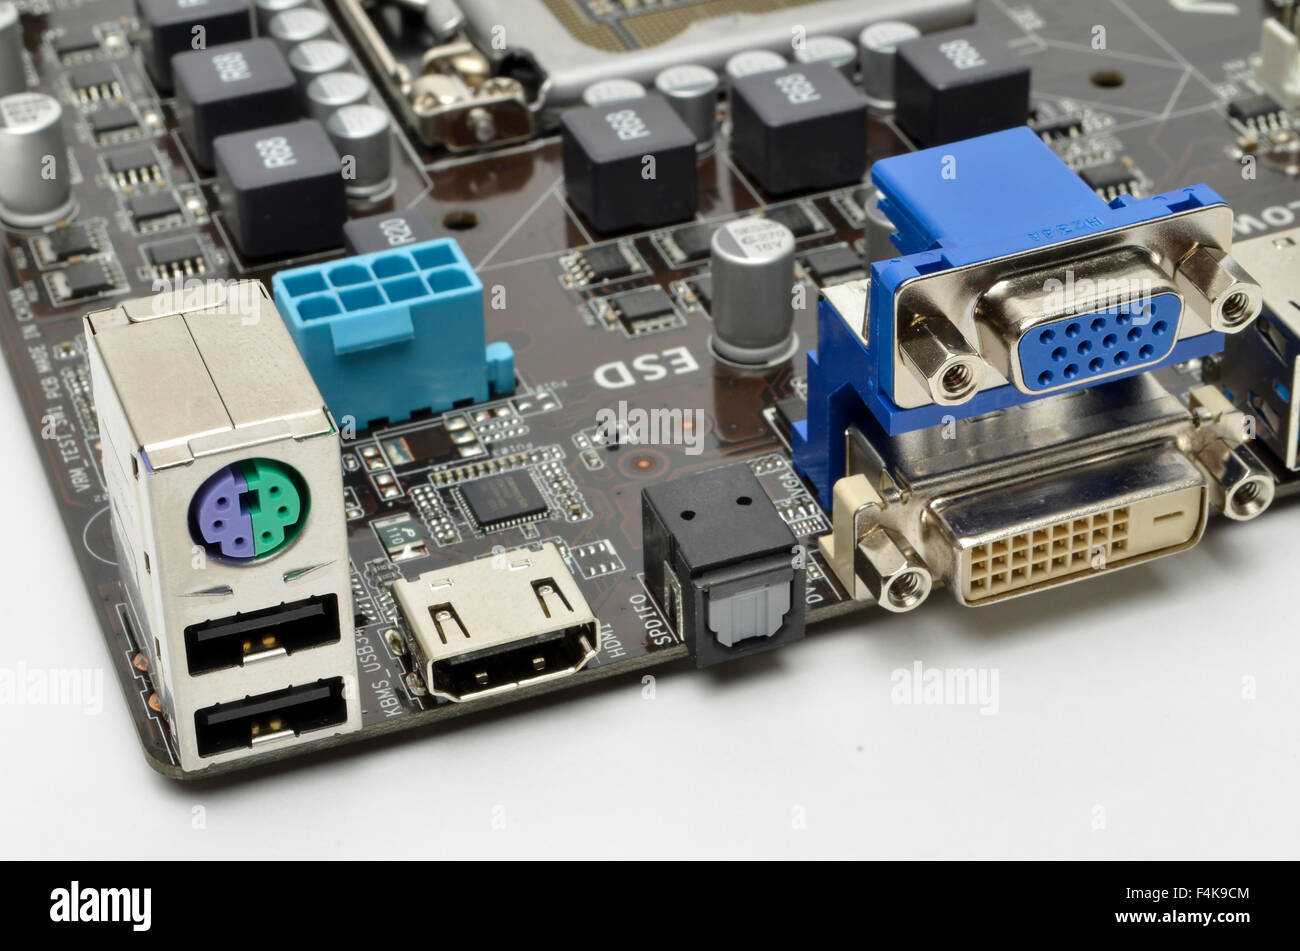 I/O ports on the rear of an ASUS motherboard, including keyboard, USB, HDMI, S/PDIF, VGA, and DVI-D sockets. Stock Photo